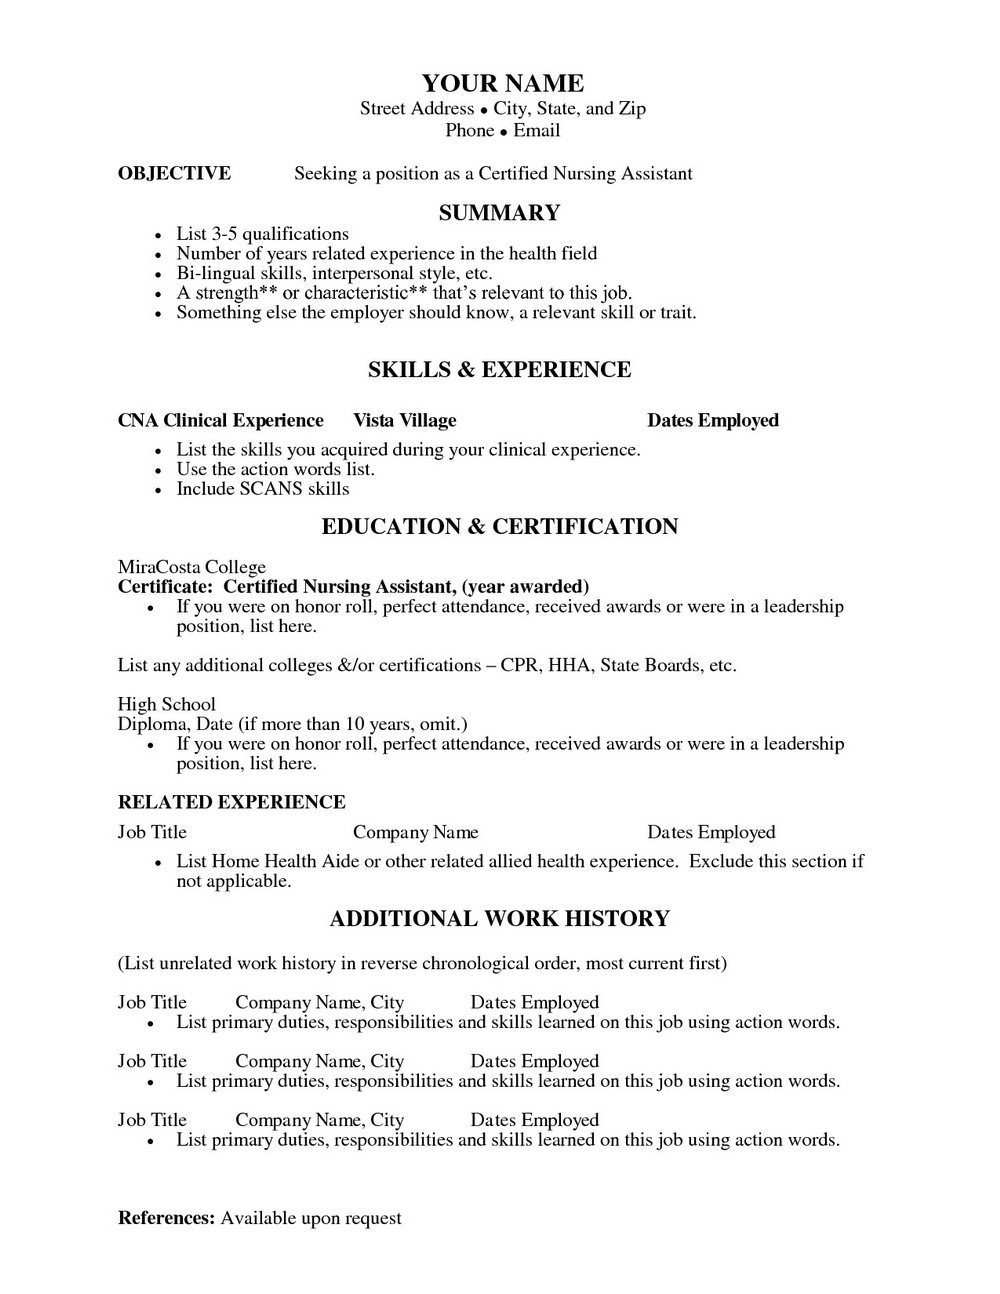 Certified Nursing Assistant Resume Templates